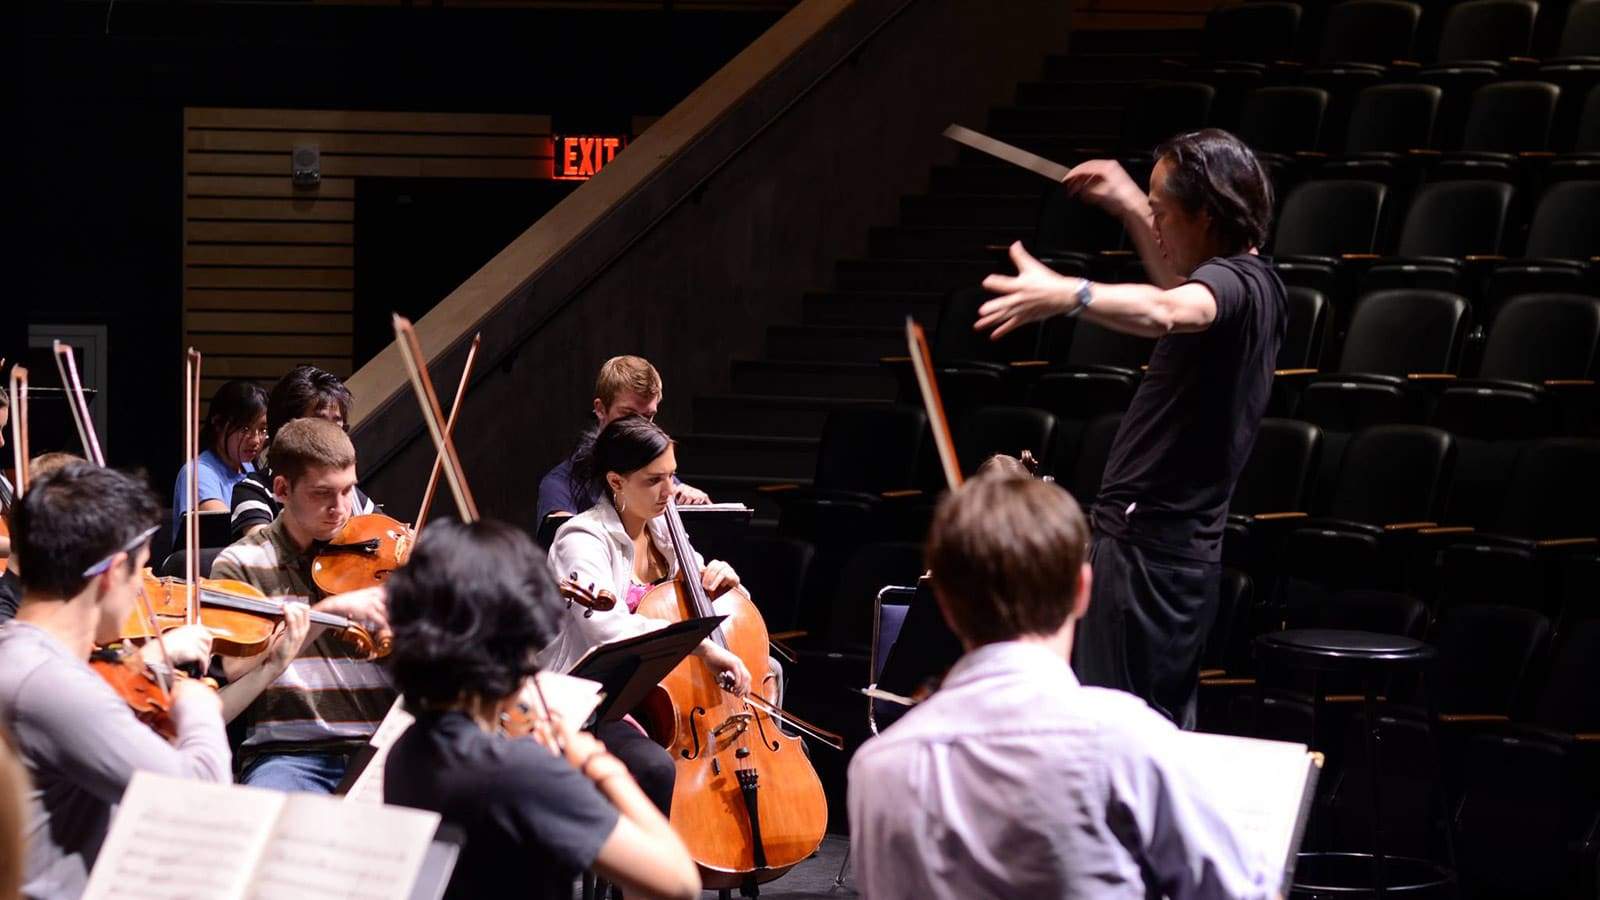 Scott Yoo conducts at the Cornerstone Arts Center